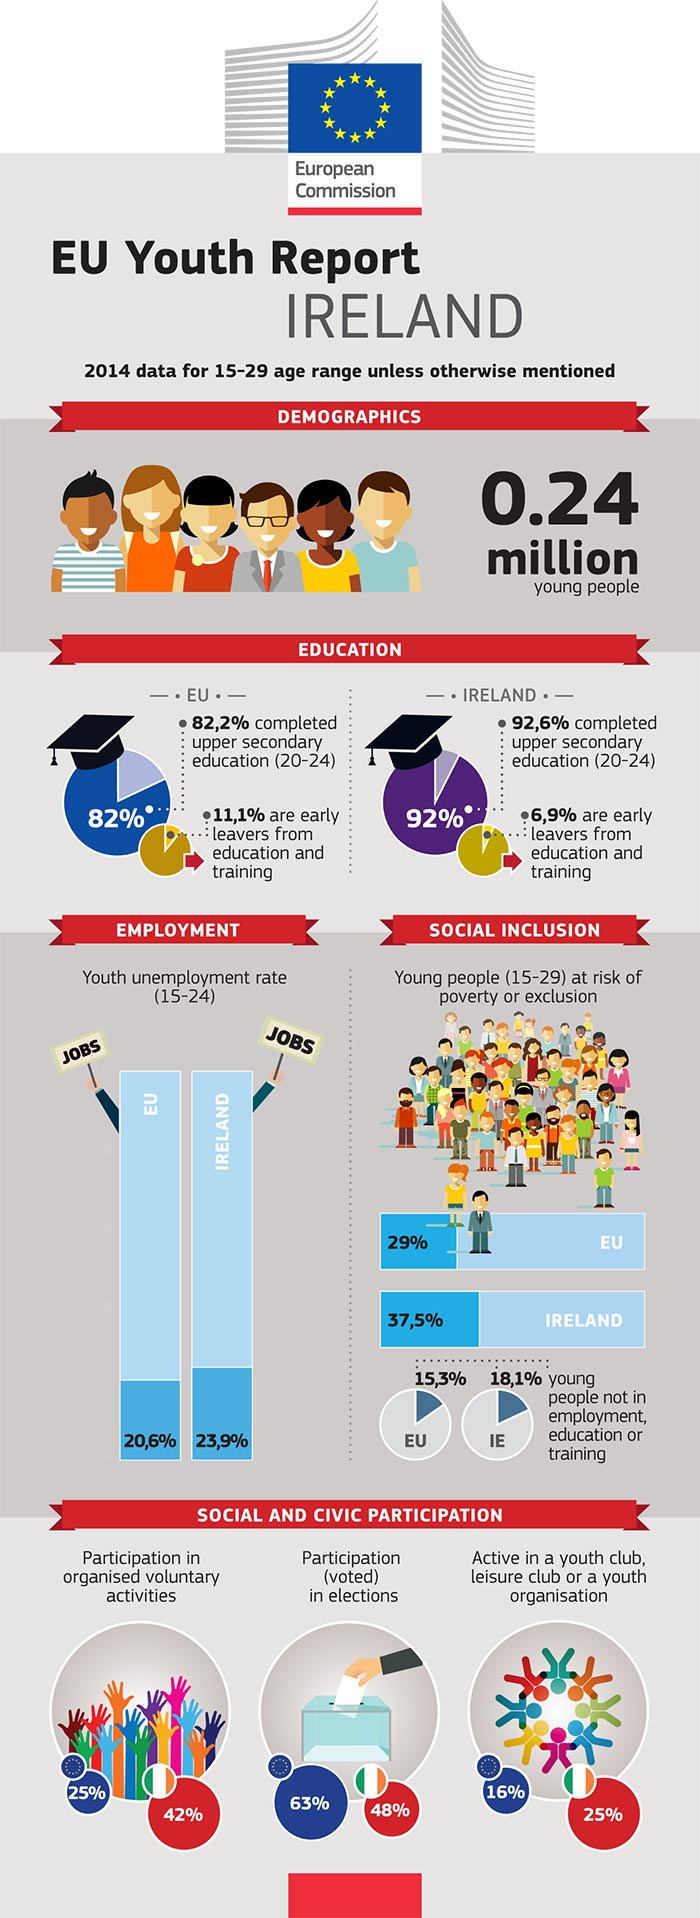 EU Youth Report infographic: Ireland